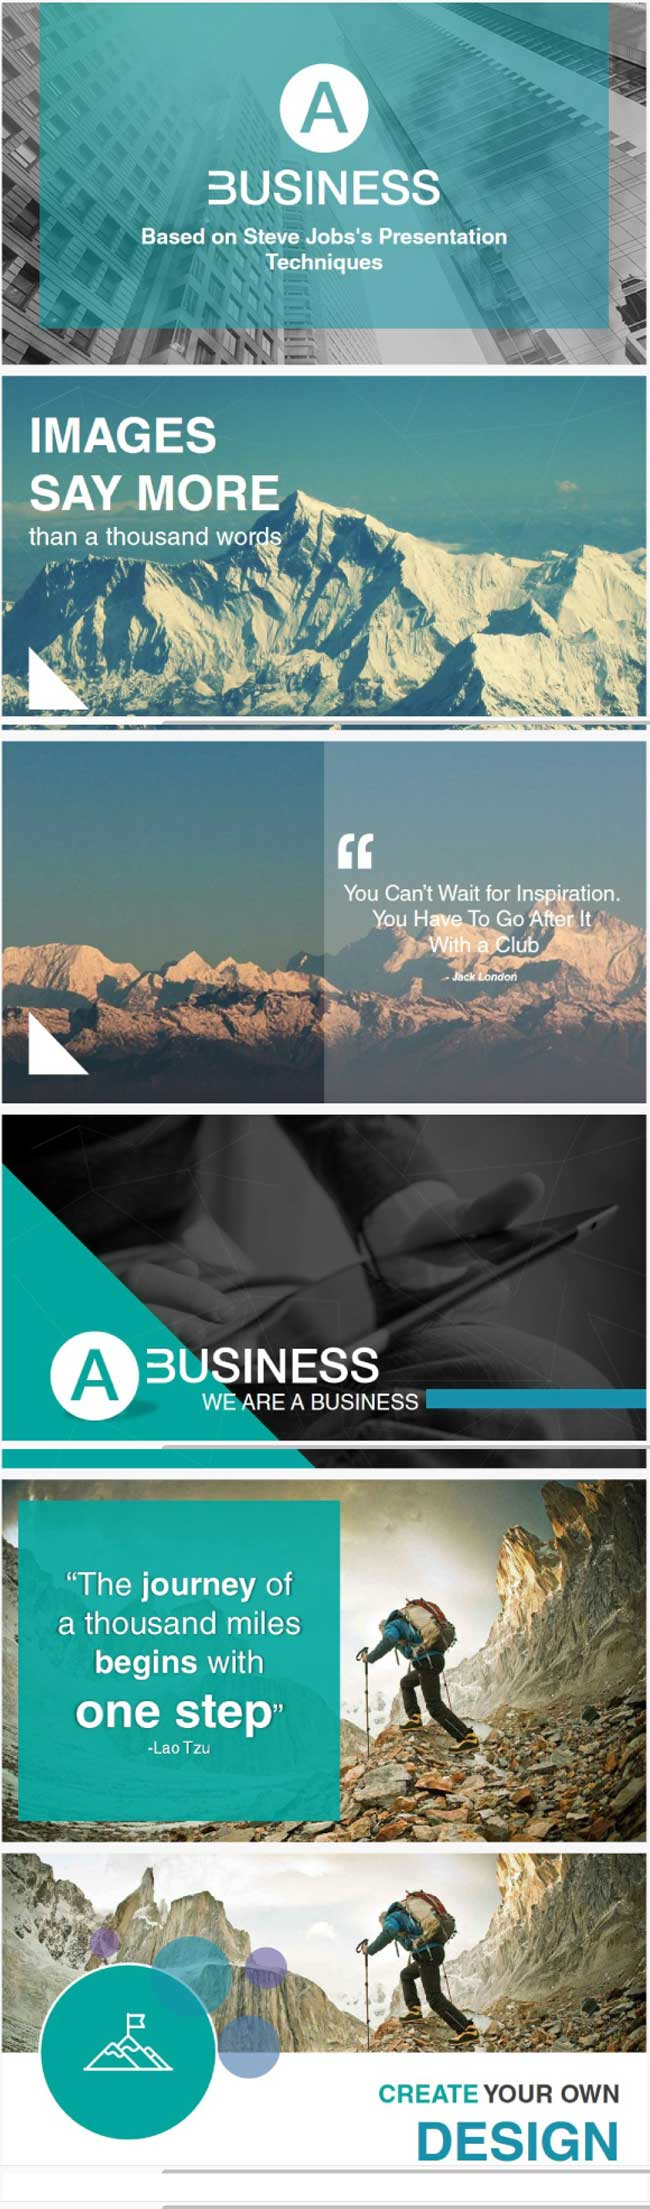 a-business-multipurpose-powerpoint-presentation-template